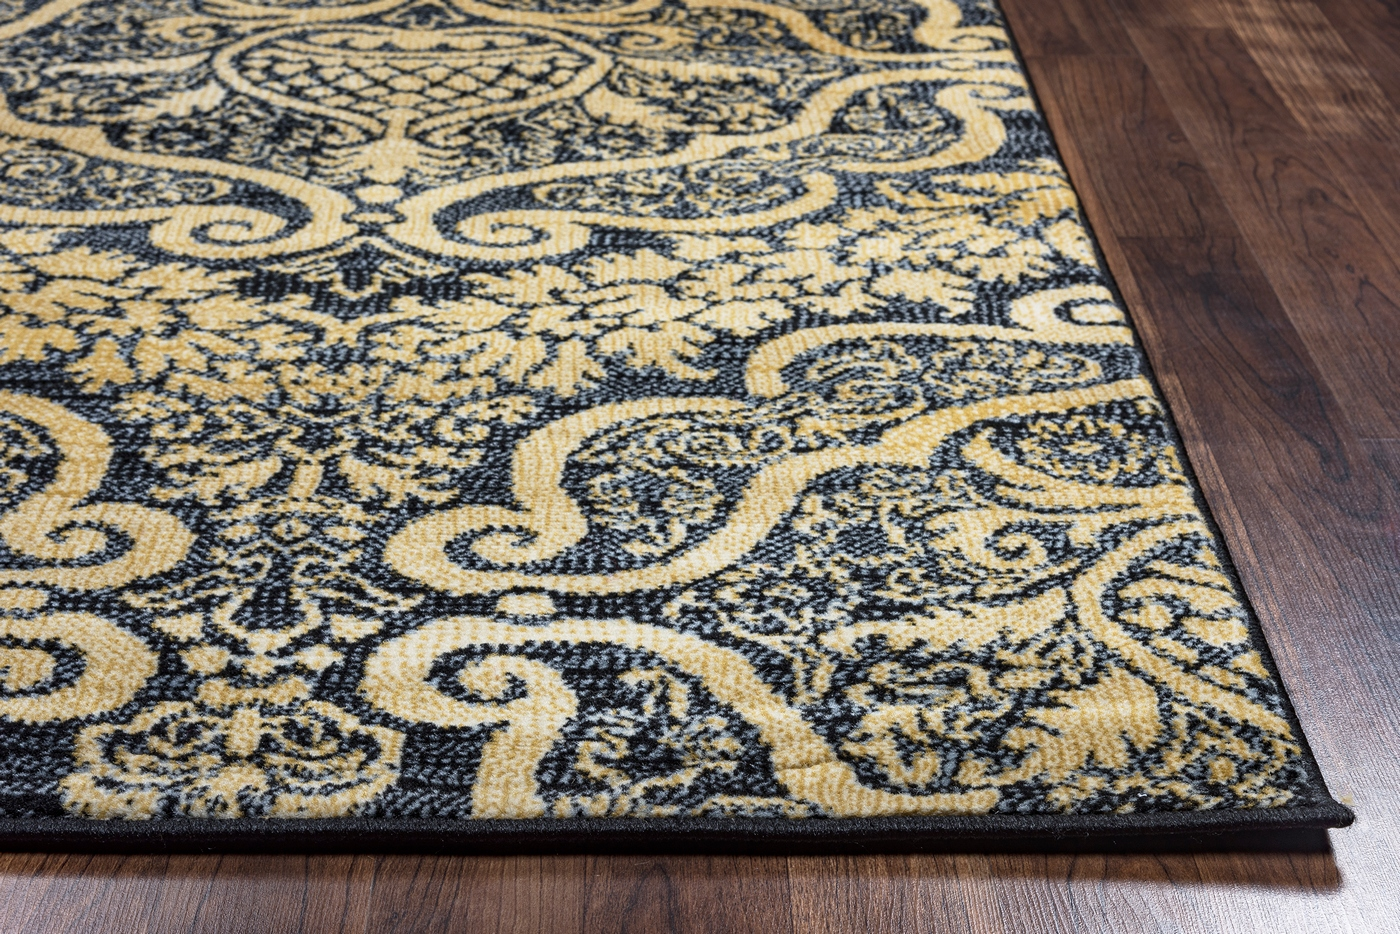 carrington royal ornamental pattern area rug in black. Black Bedroom Furniture Sets. Home Design Ideas